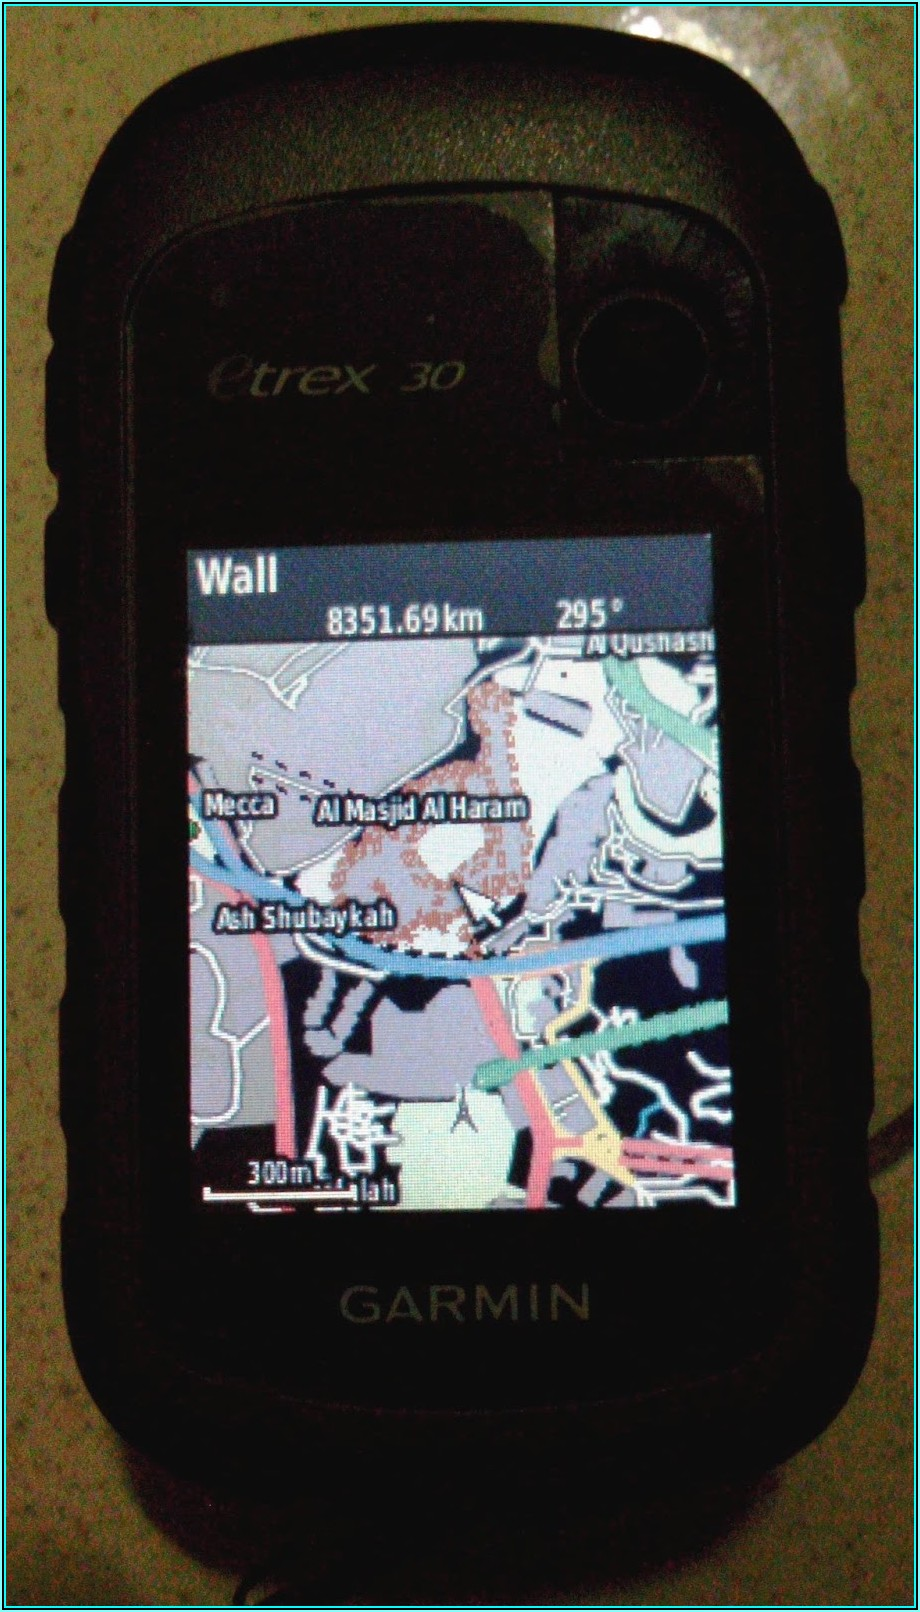 Garmin Etrex 30 Free Maps Download